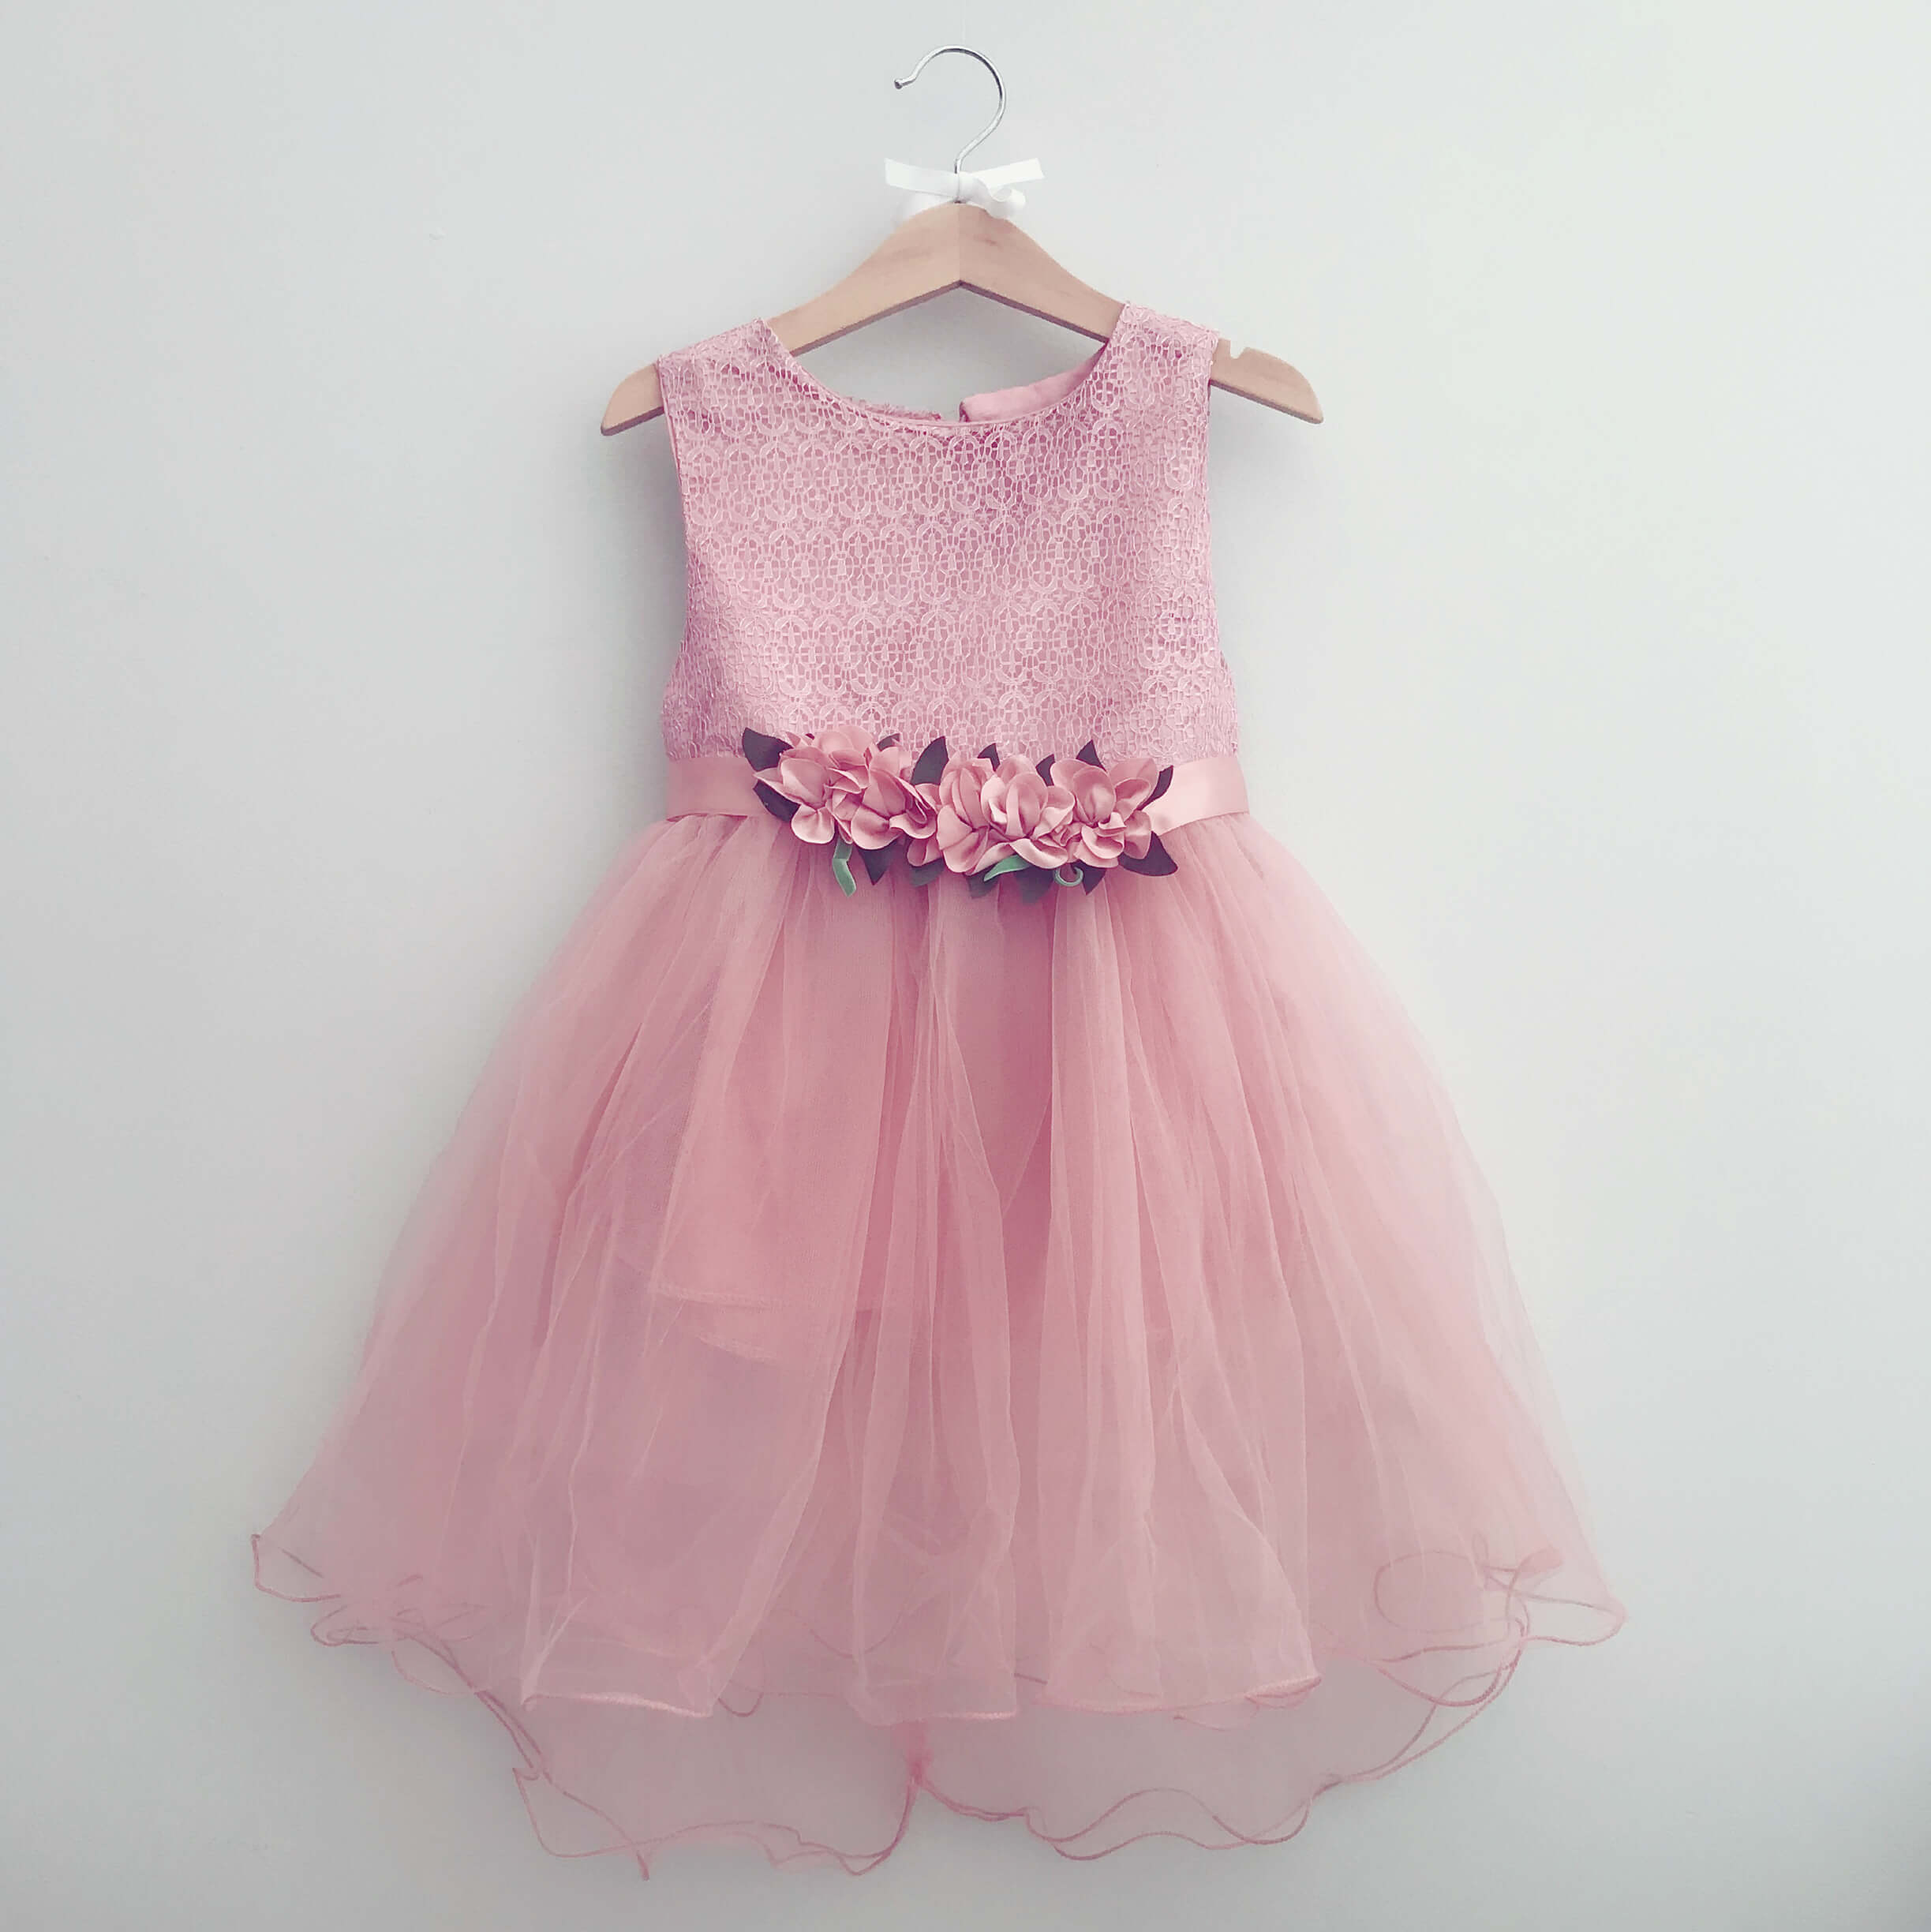 Itty Bitty Pink Princess Flower Dress Baby Boutique Clothing